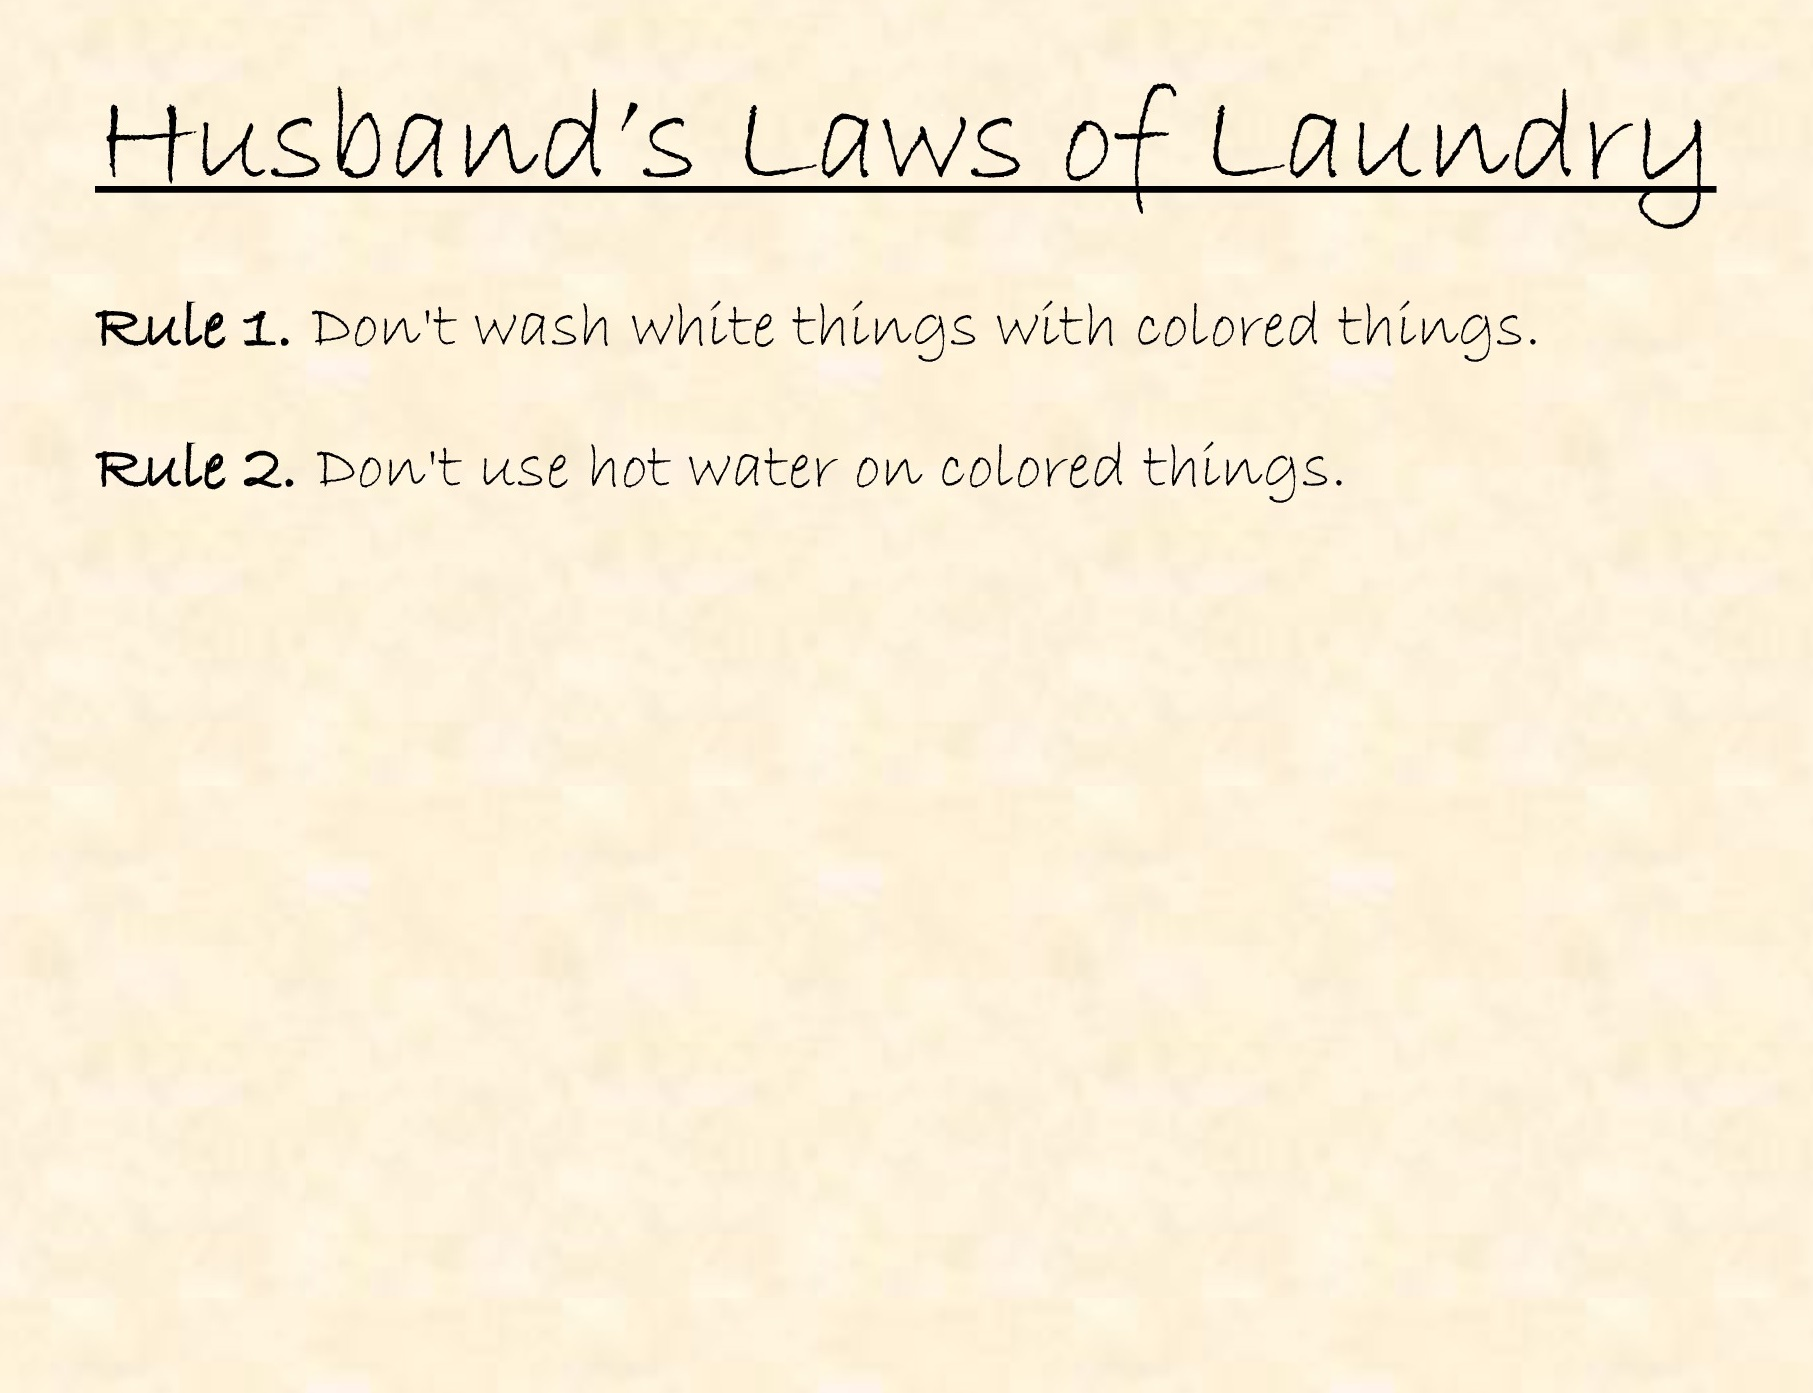 Husband's Laws of Laundry